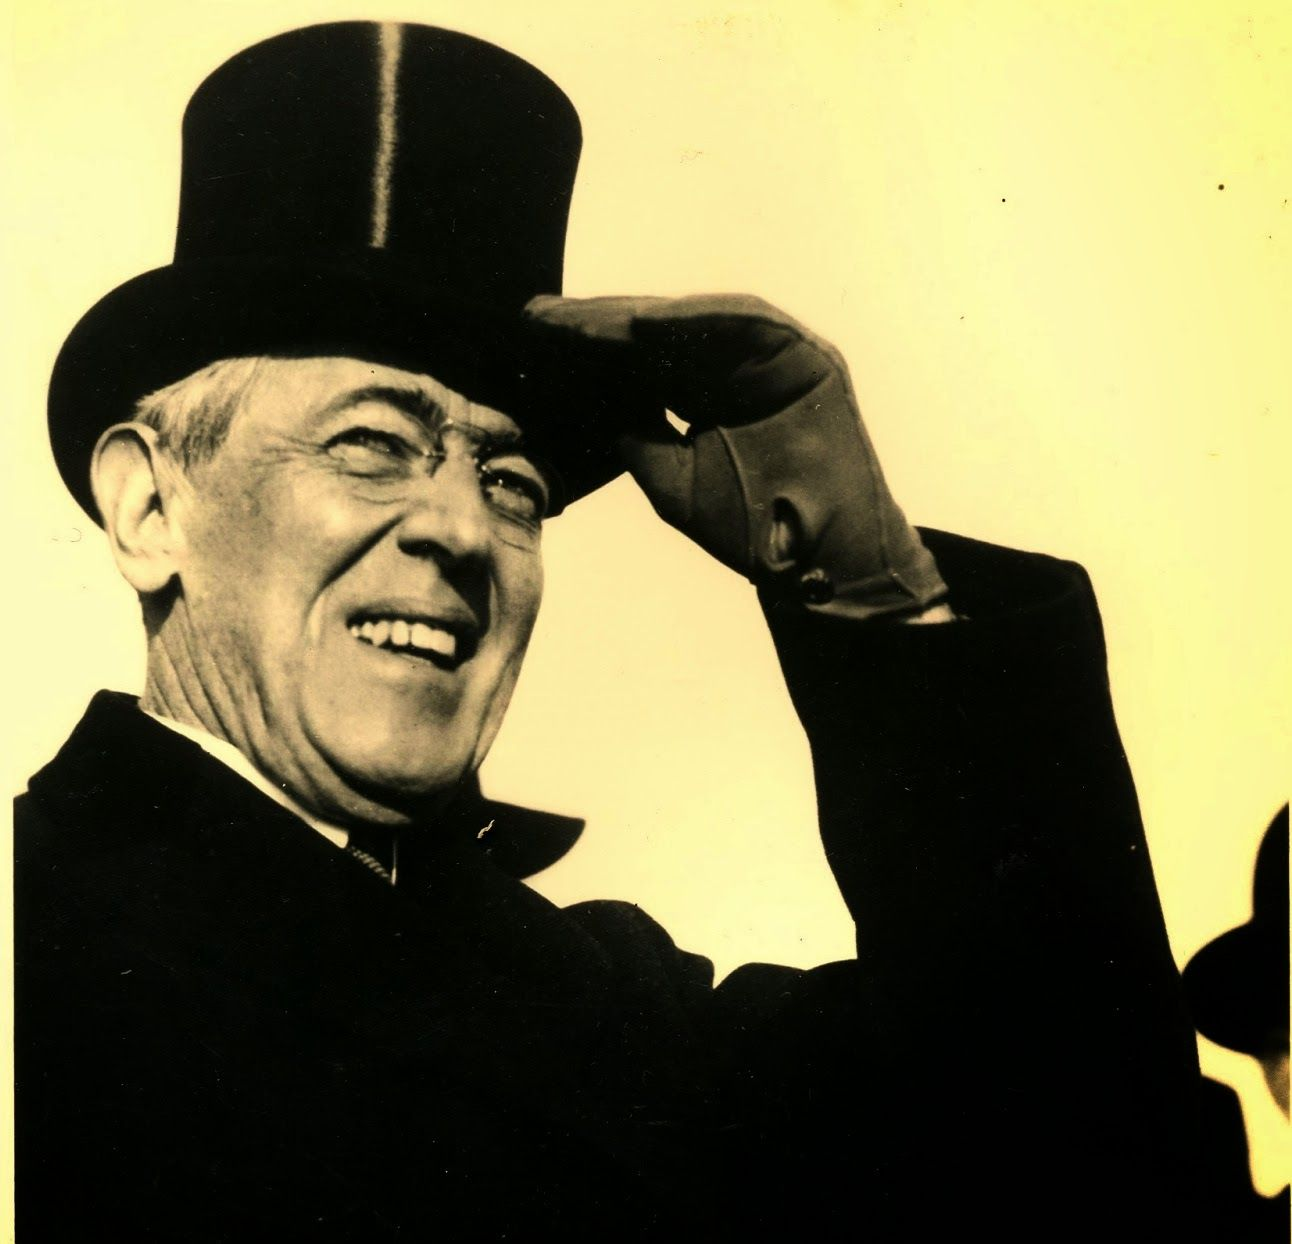 Quot Tipping Of The Hat Is A Conventional Gesture Of Politeness This Hat Tipping Custom Has The Same Origin As Military Saluting Whi Hats History Etiquette